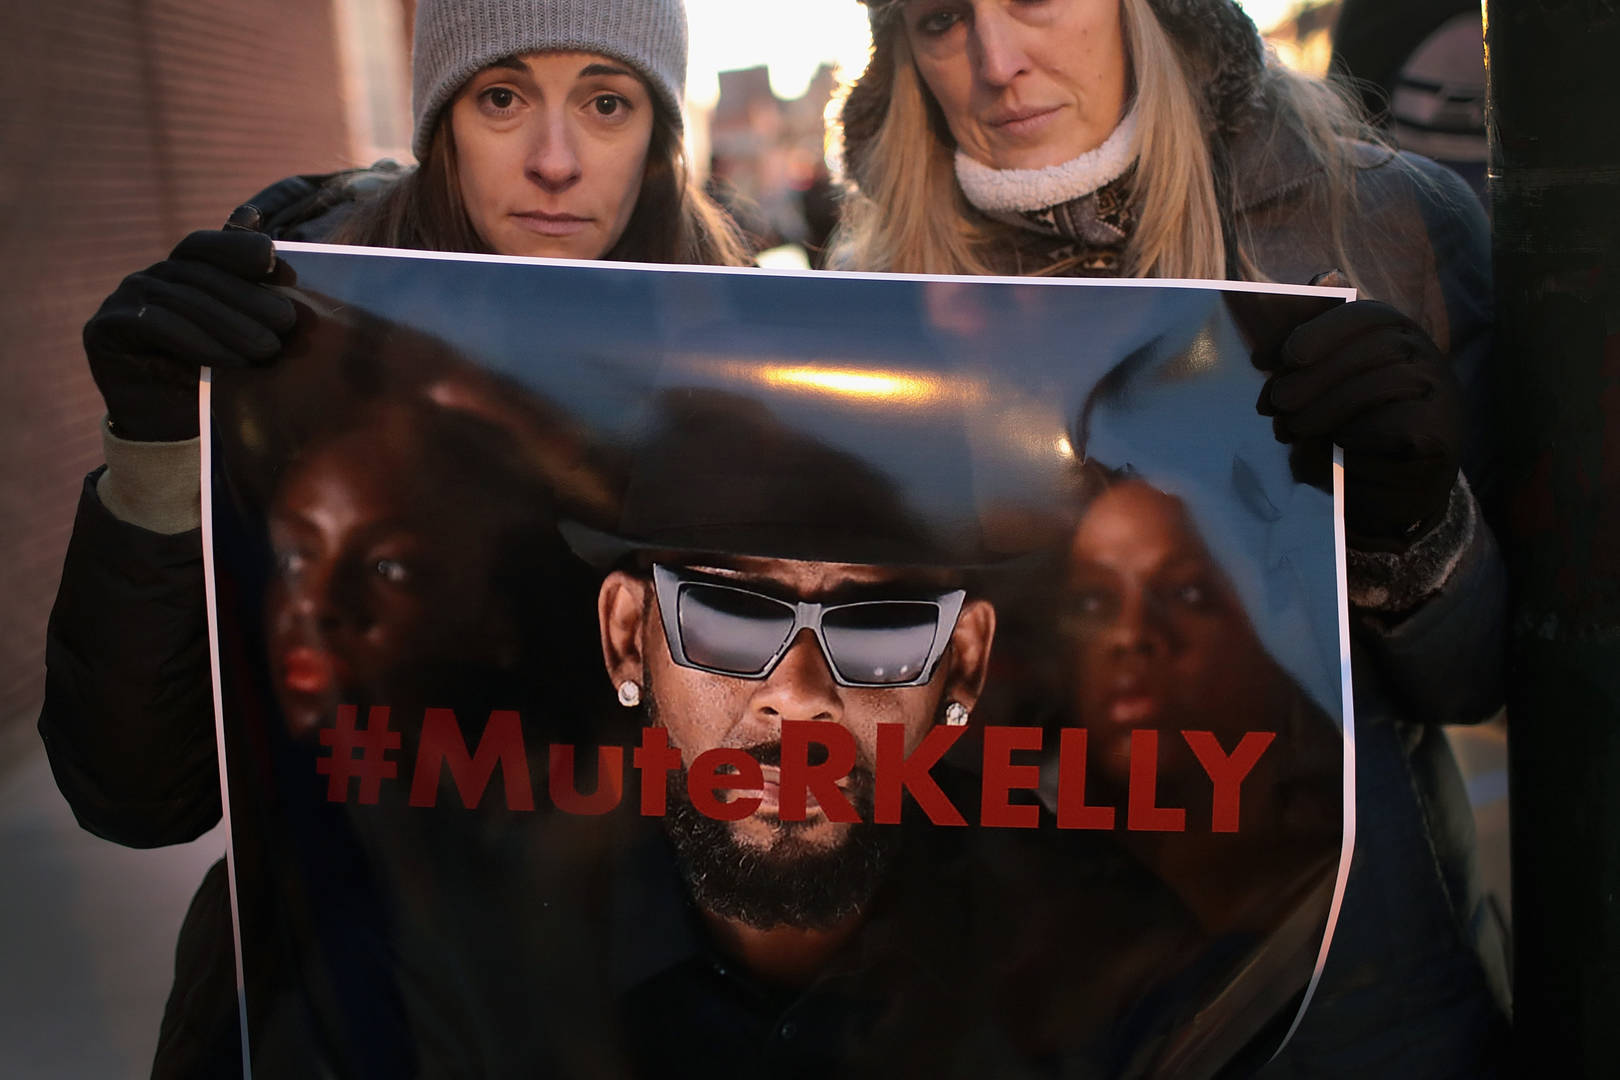 Sony Music drops R. Kelly amid misconduct allegations